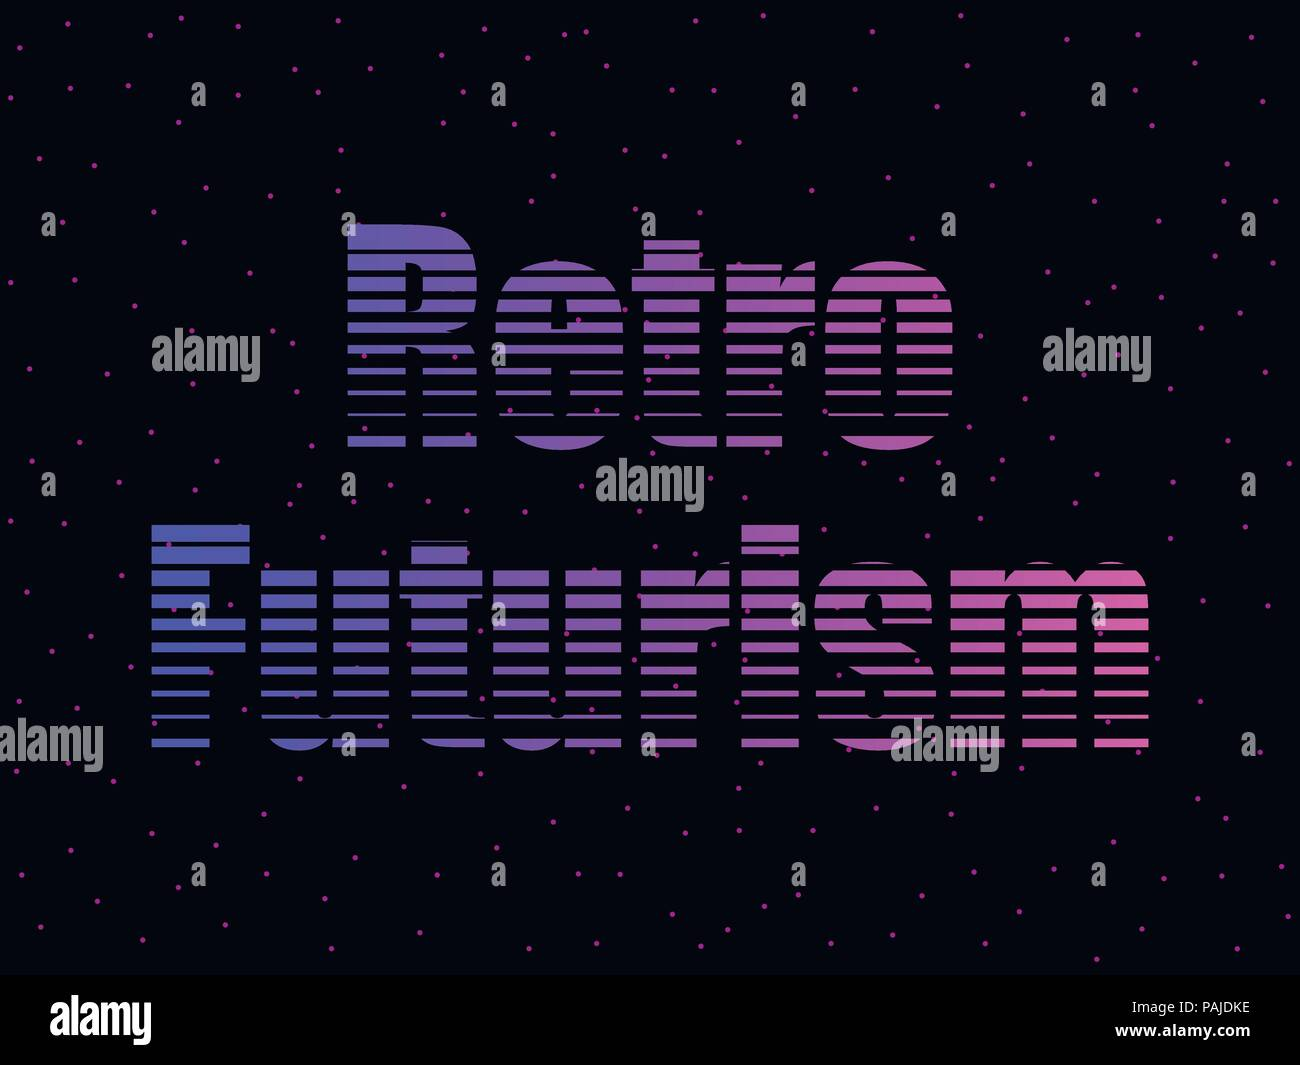 Retro futurism text in the 80s style, letters against the background